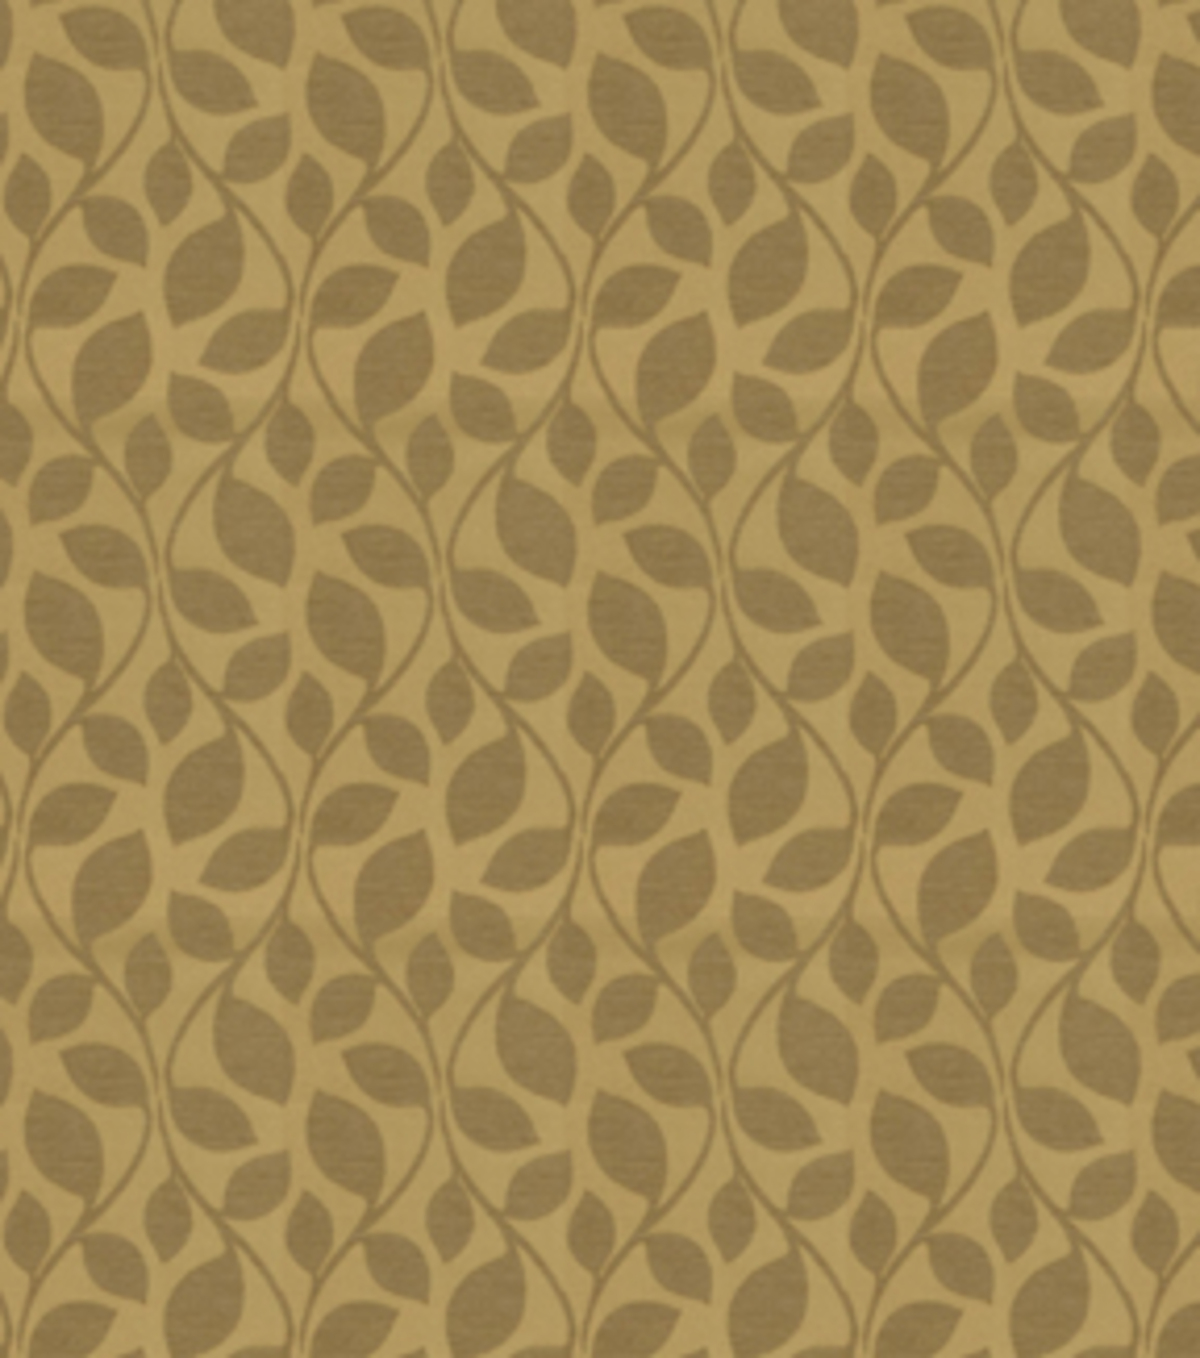 Home Decor 8\u0022x8\u0022 Fabric Swatch-Eaton Square Keanu Gold